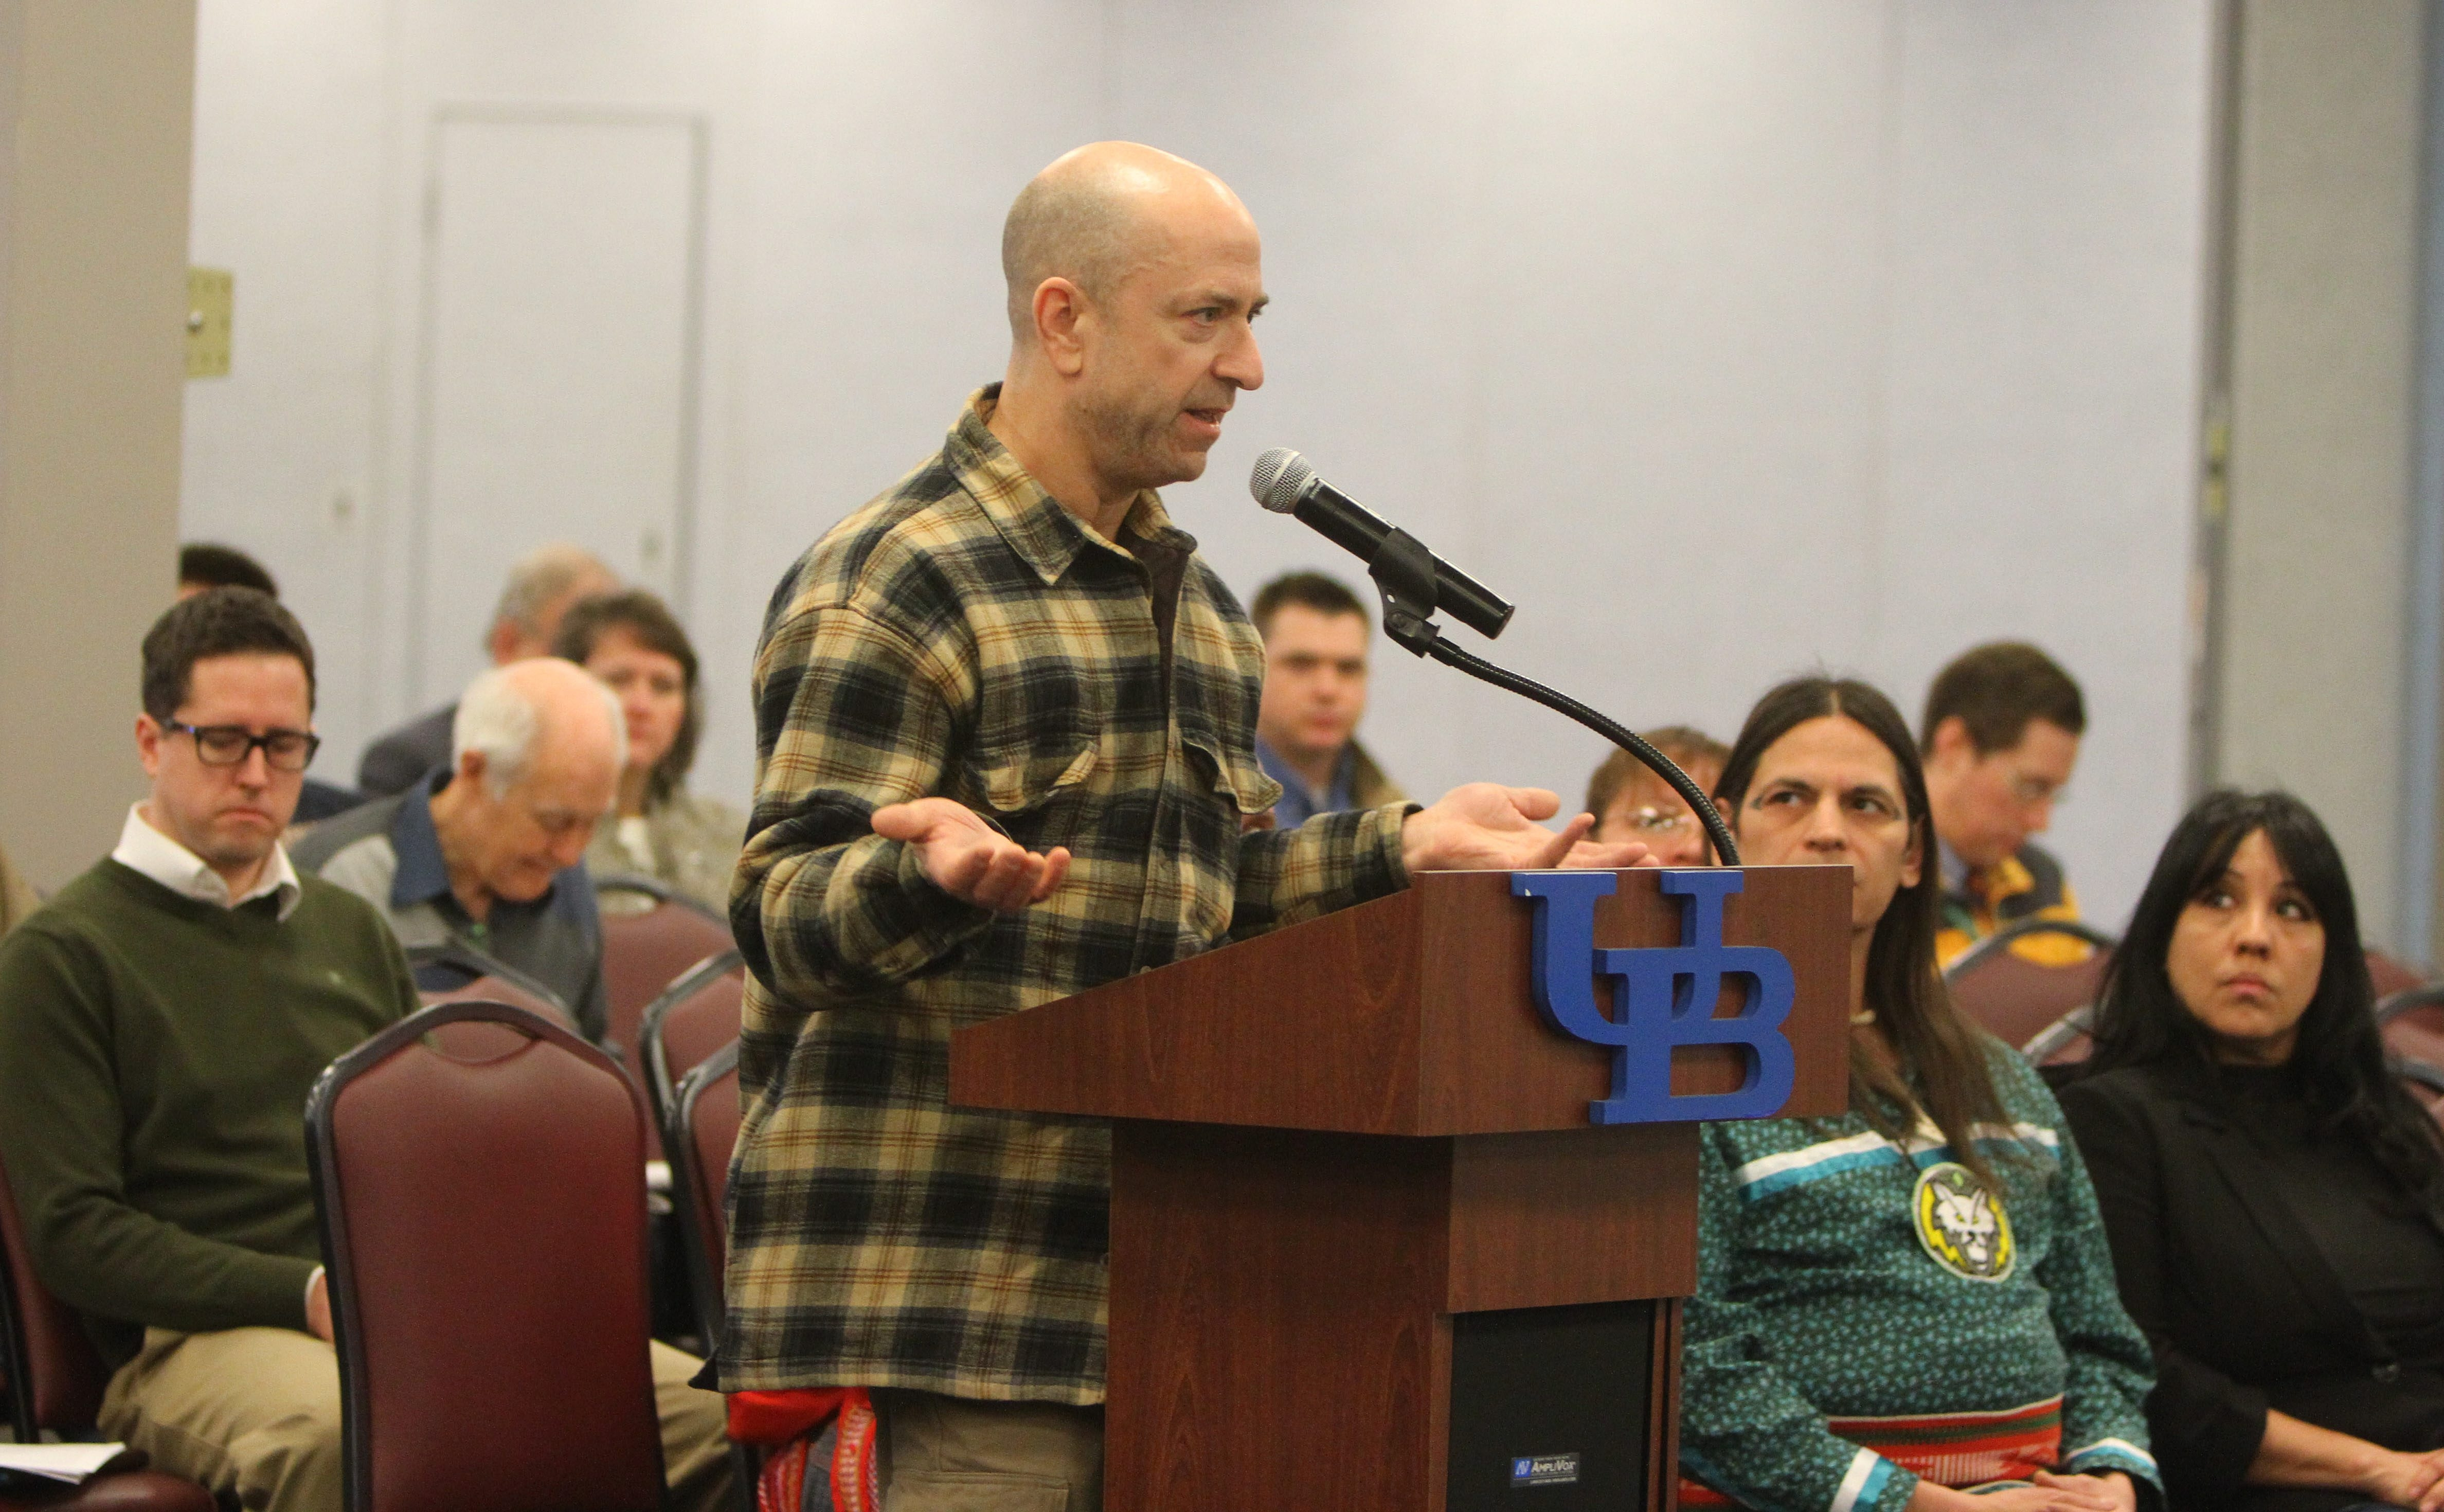 James C. Hufnagel, of Wilson, addresses panel during hearing at UB on the state's draft energy plan, calling on the governor to make his position clear on whether hydrofracking should be part of it.